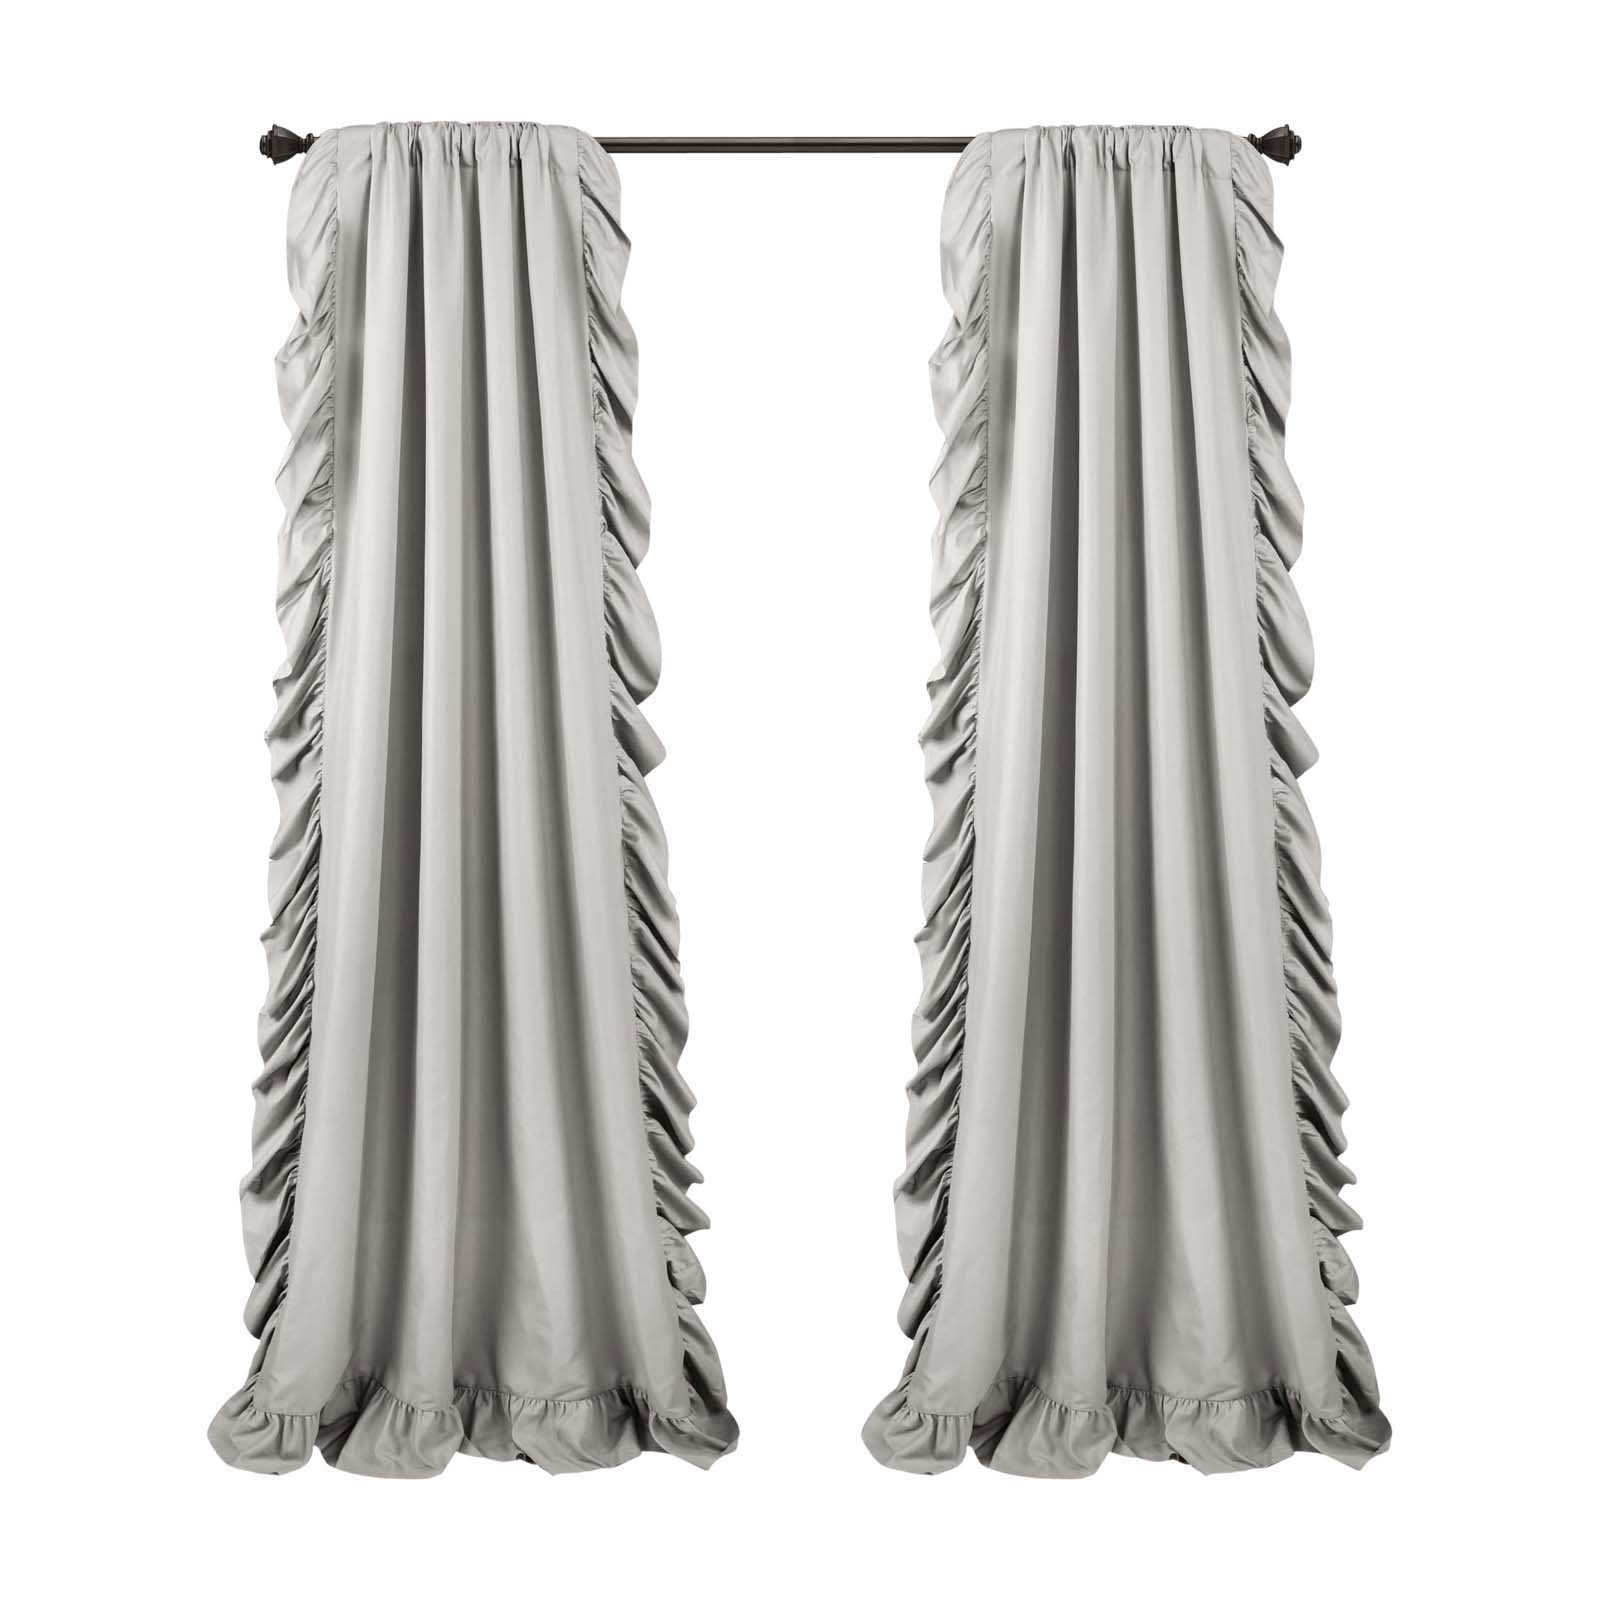 Lush Decor Reyna Window Curtain Panel Pair Light Gray Panel